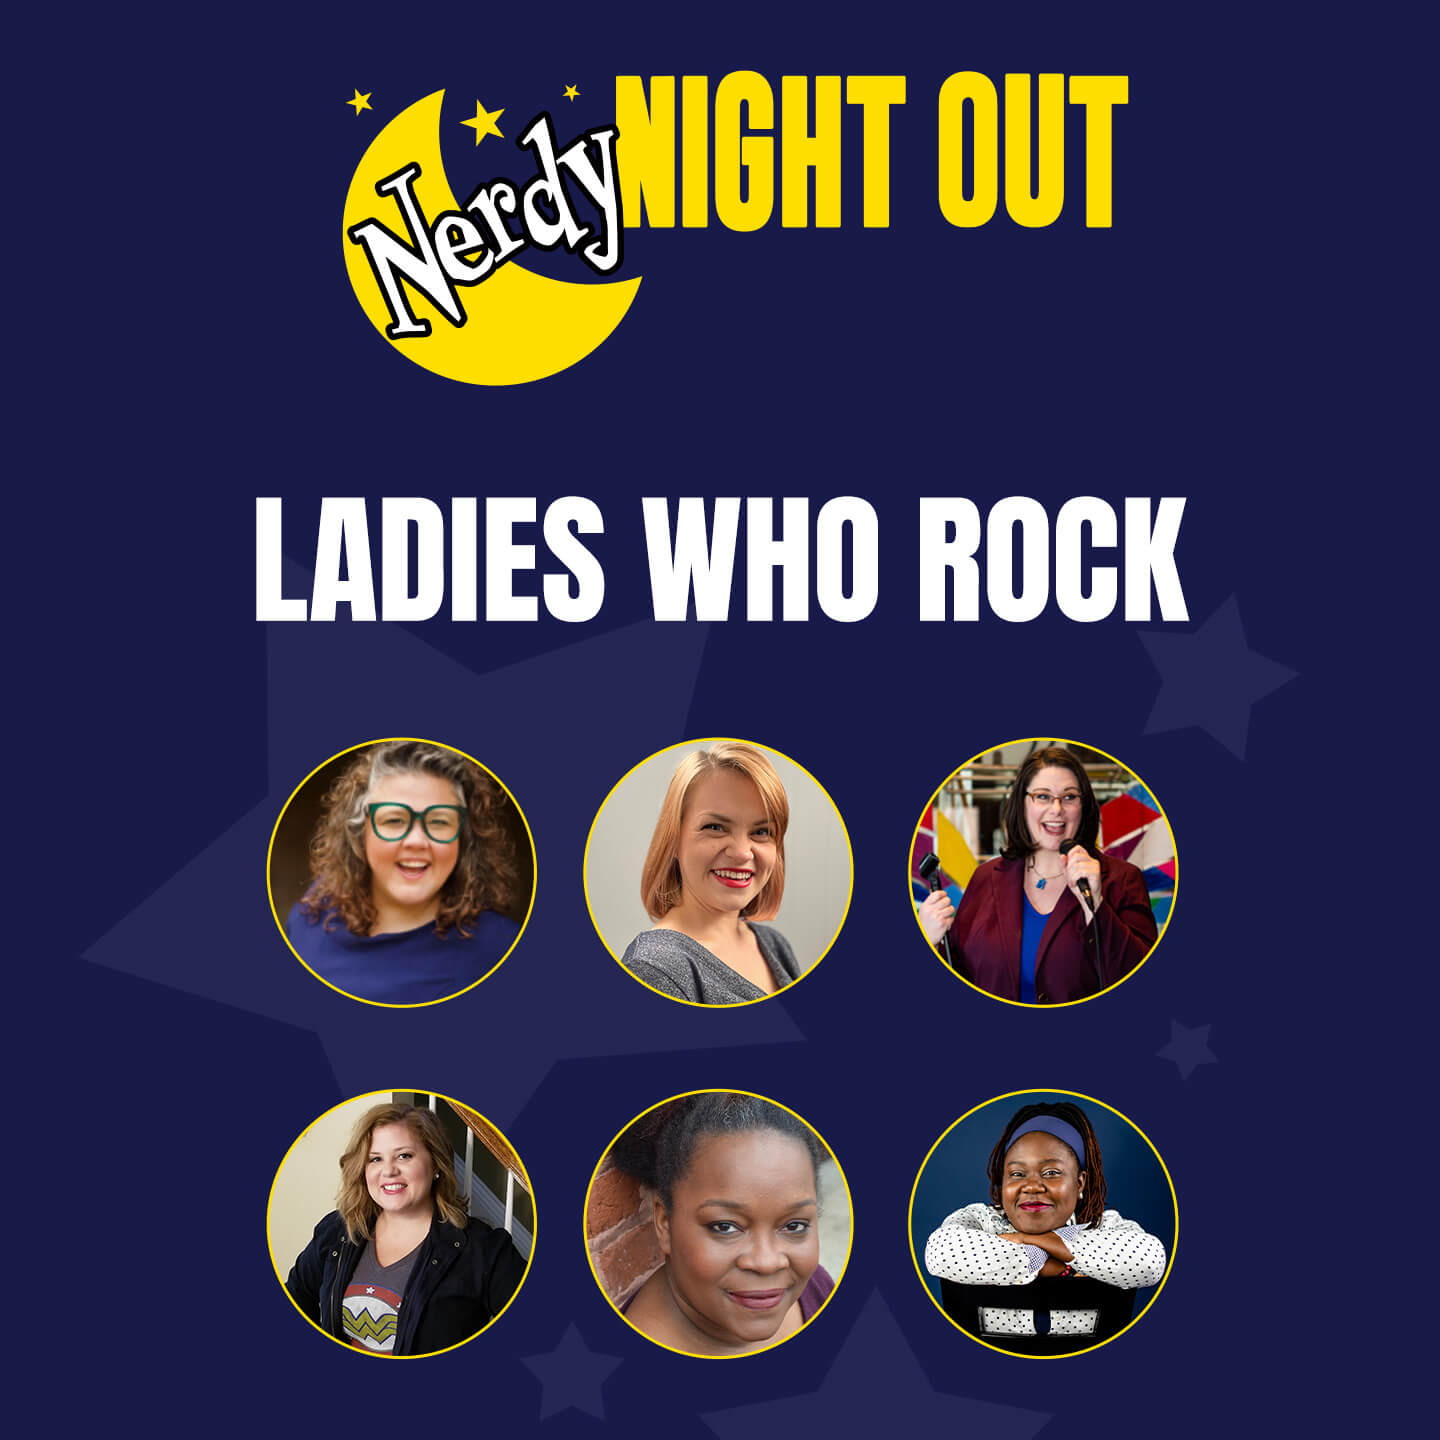 Nerdy Night Out: Scary Ladies Who Rock